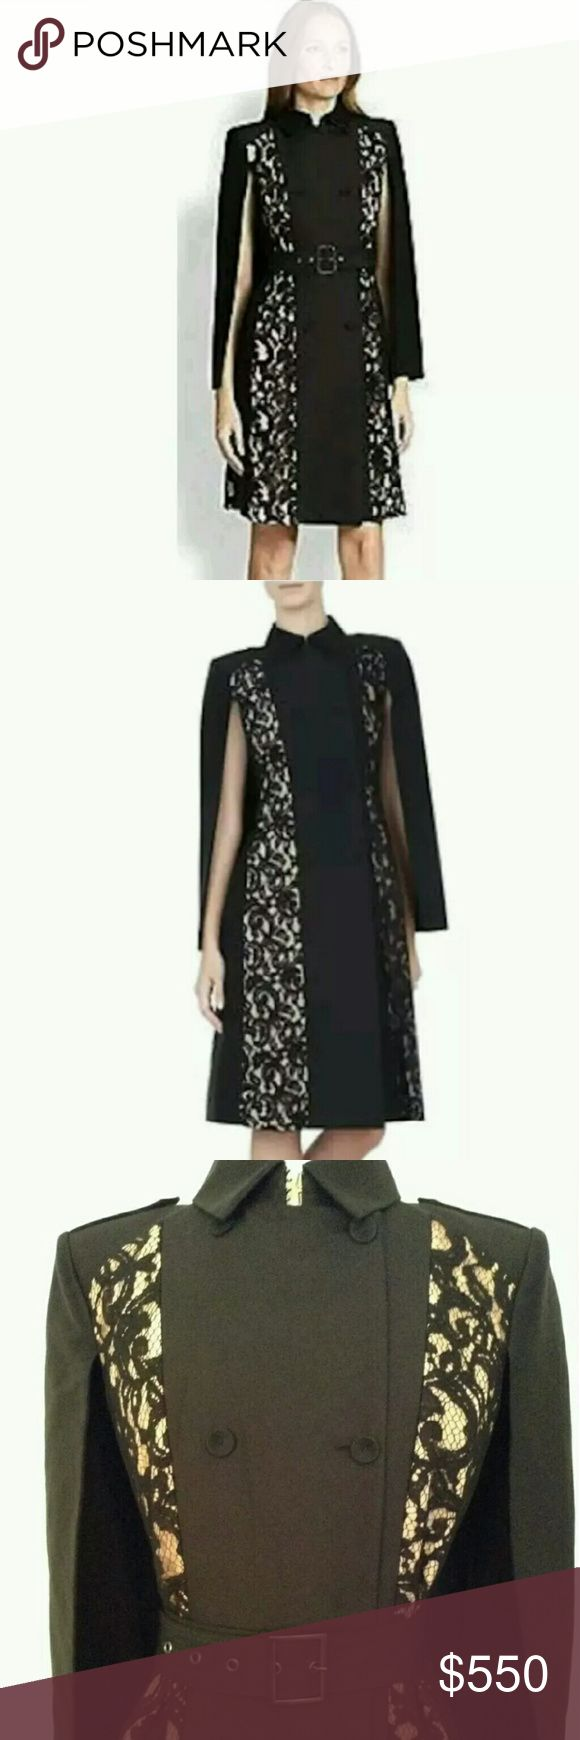 Selling this NWT  BCBG lace black cape jacket dress M on Poshmark! My username is: shanesha. #shopmycloset #poshmark #fashion #shopping #style #forsale #BCBGMaxAzria #Jackets & Blazers